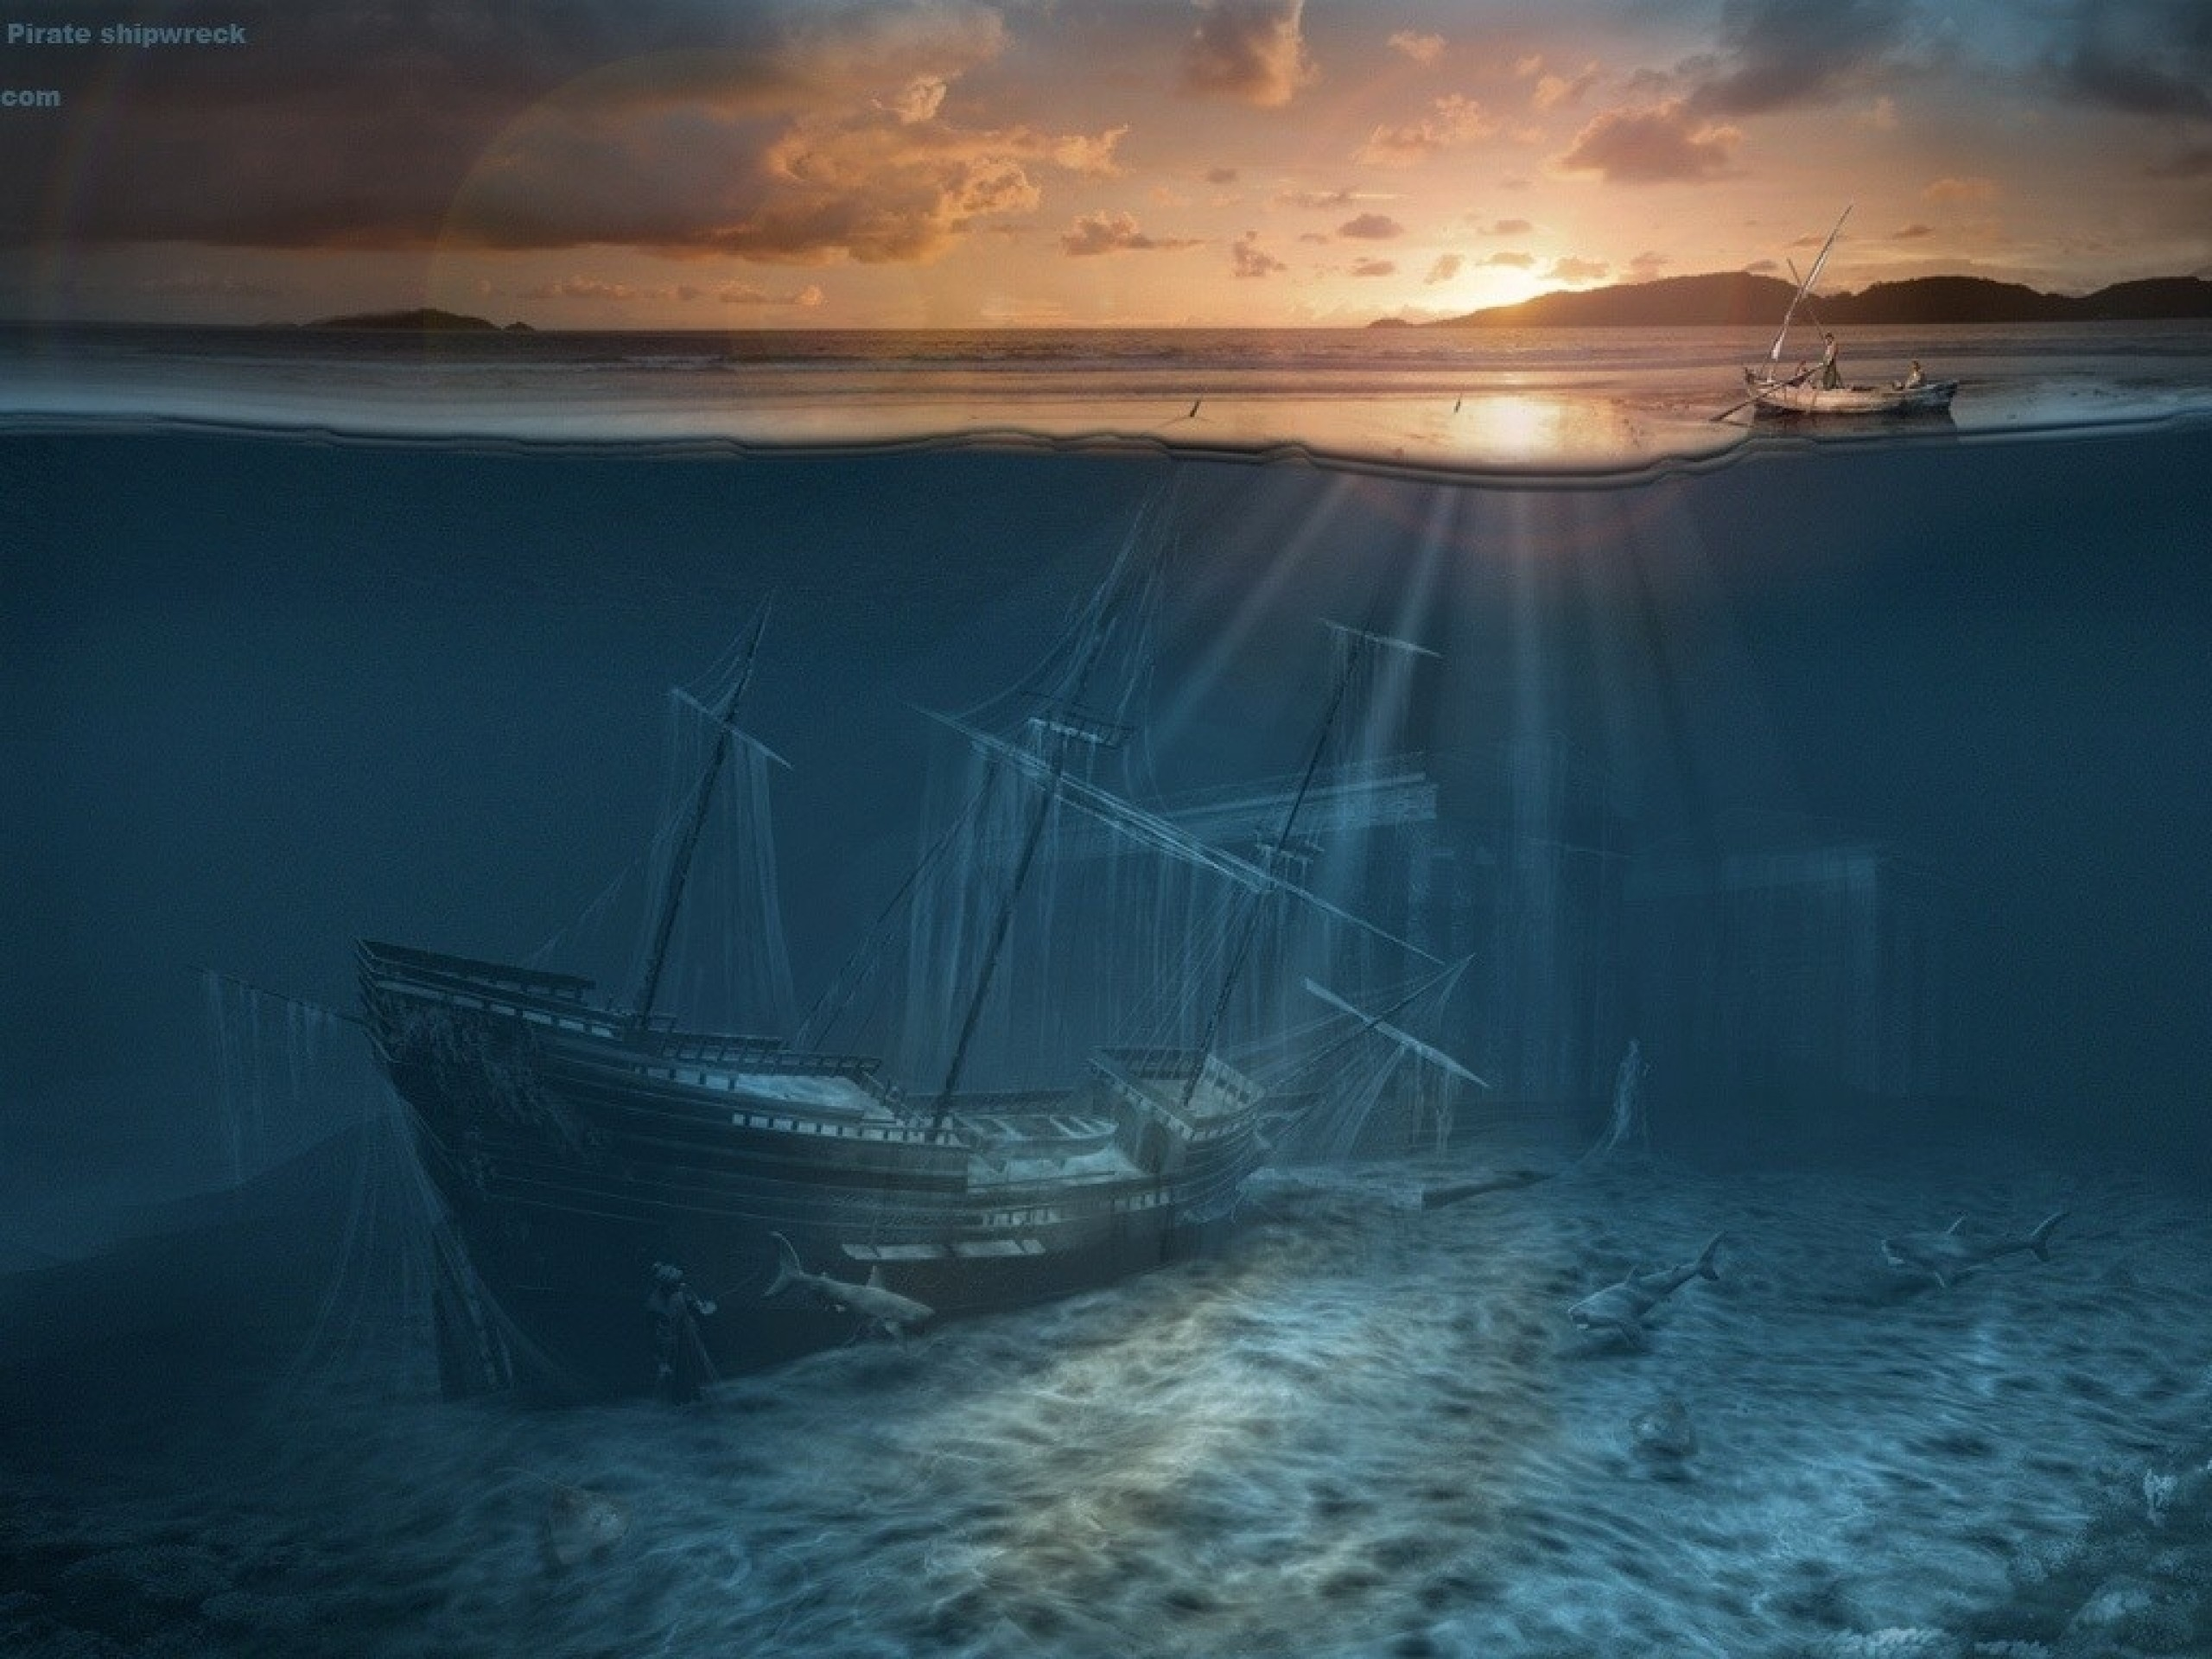 Wallpapers For Scary Halloween Shipwreck Wallpaper www